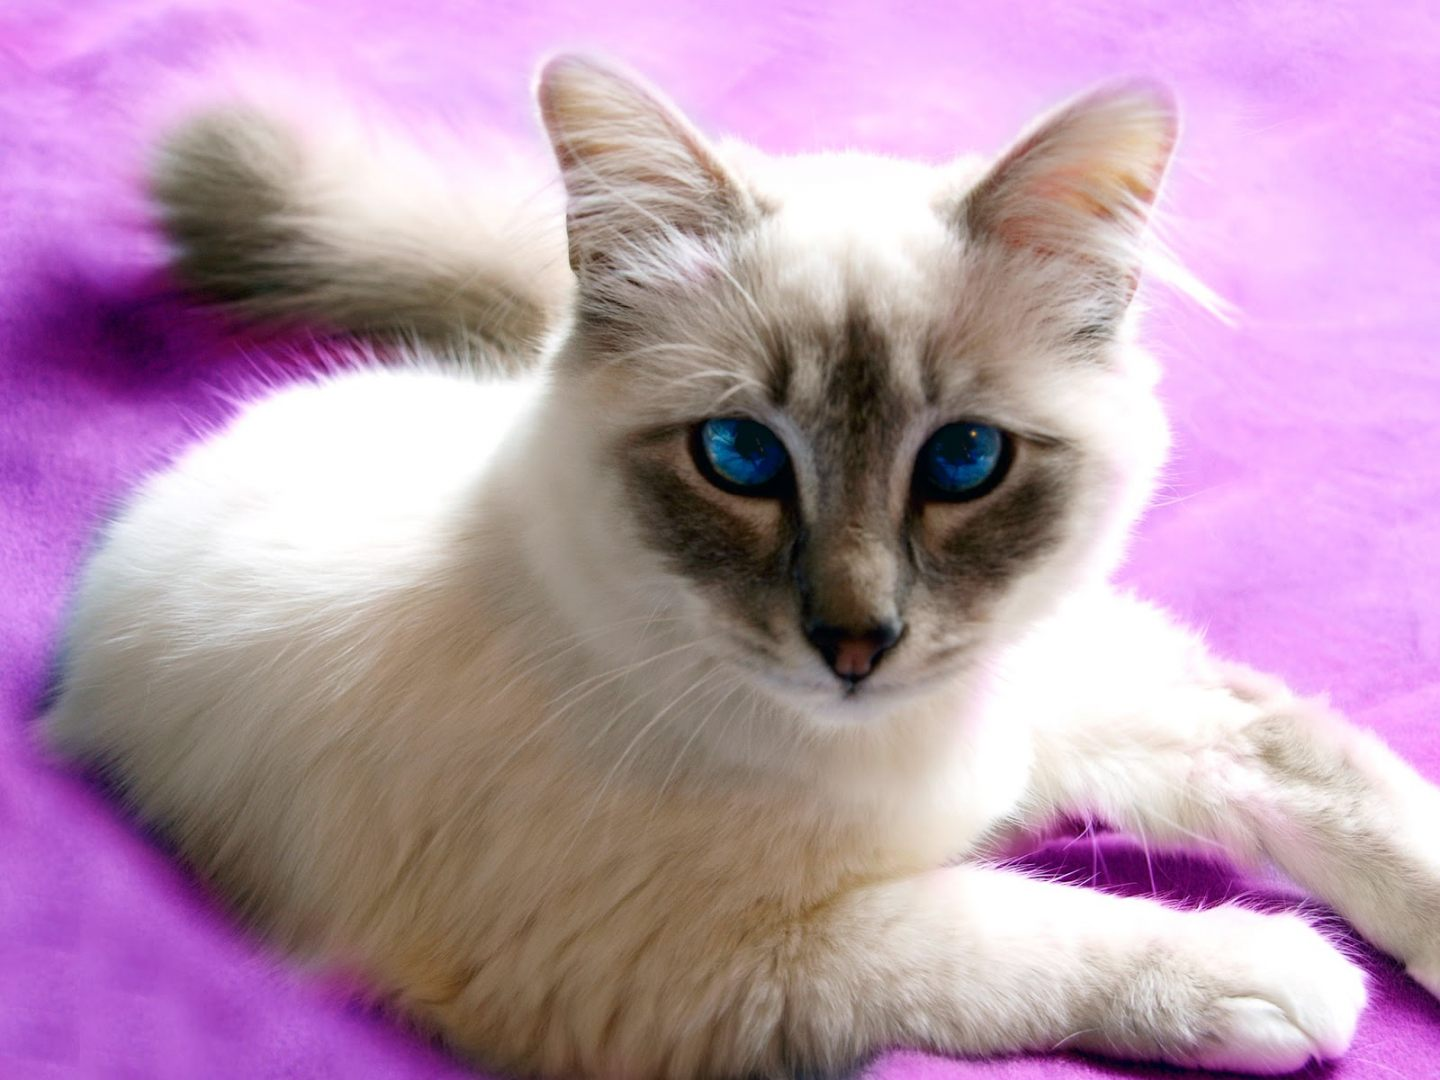 Fluffy And Cute Wallpapers Gato Javan 234 S Fotos E Imagens